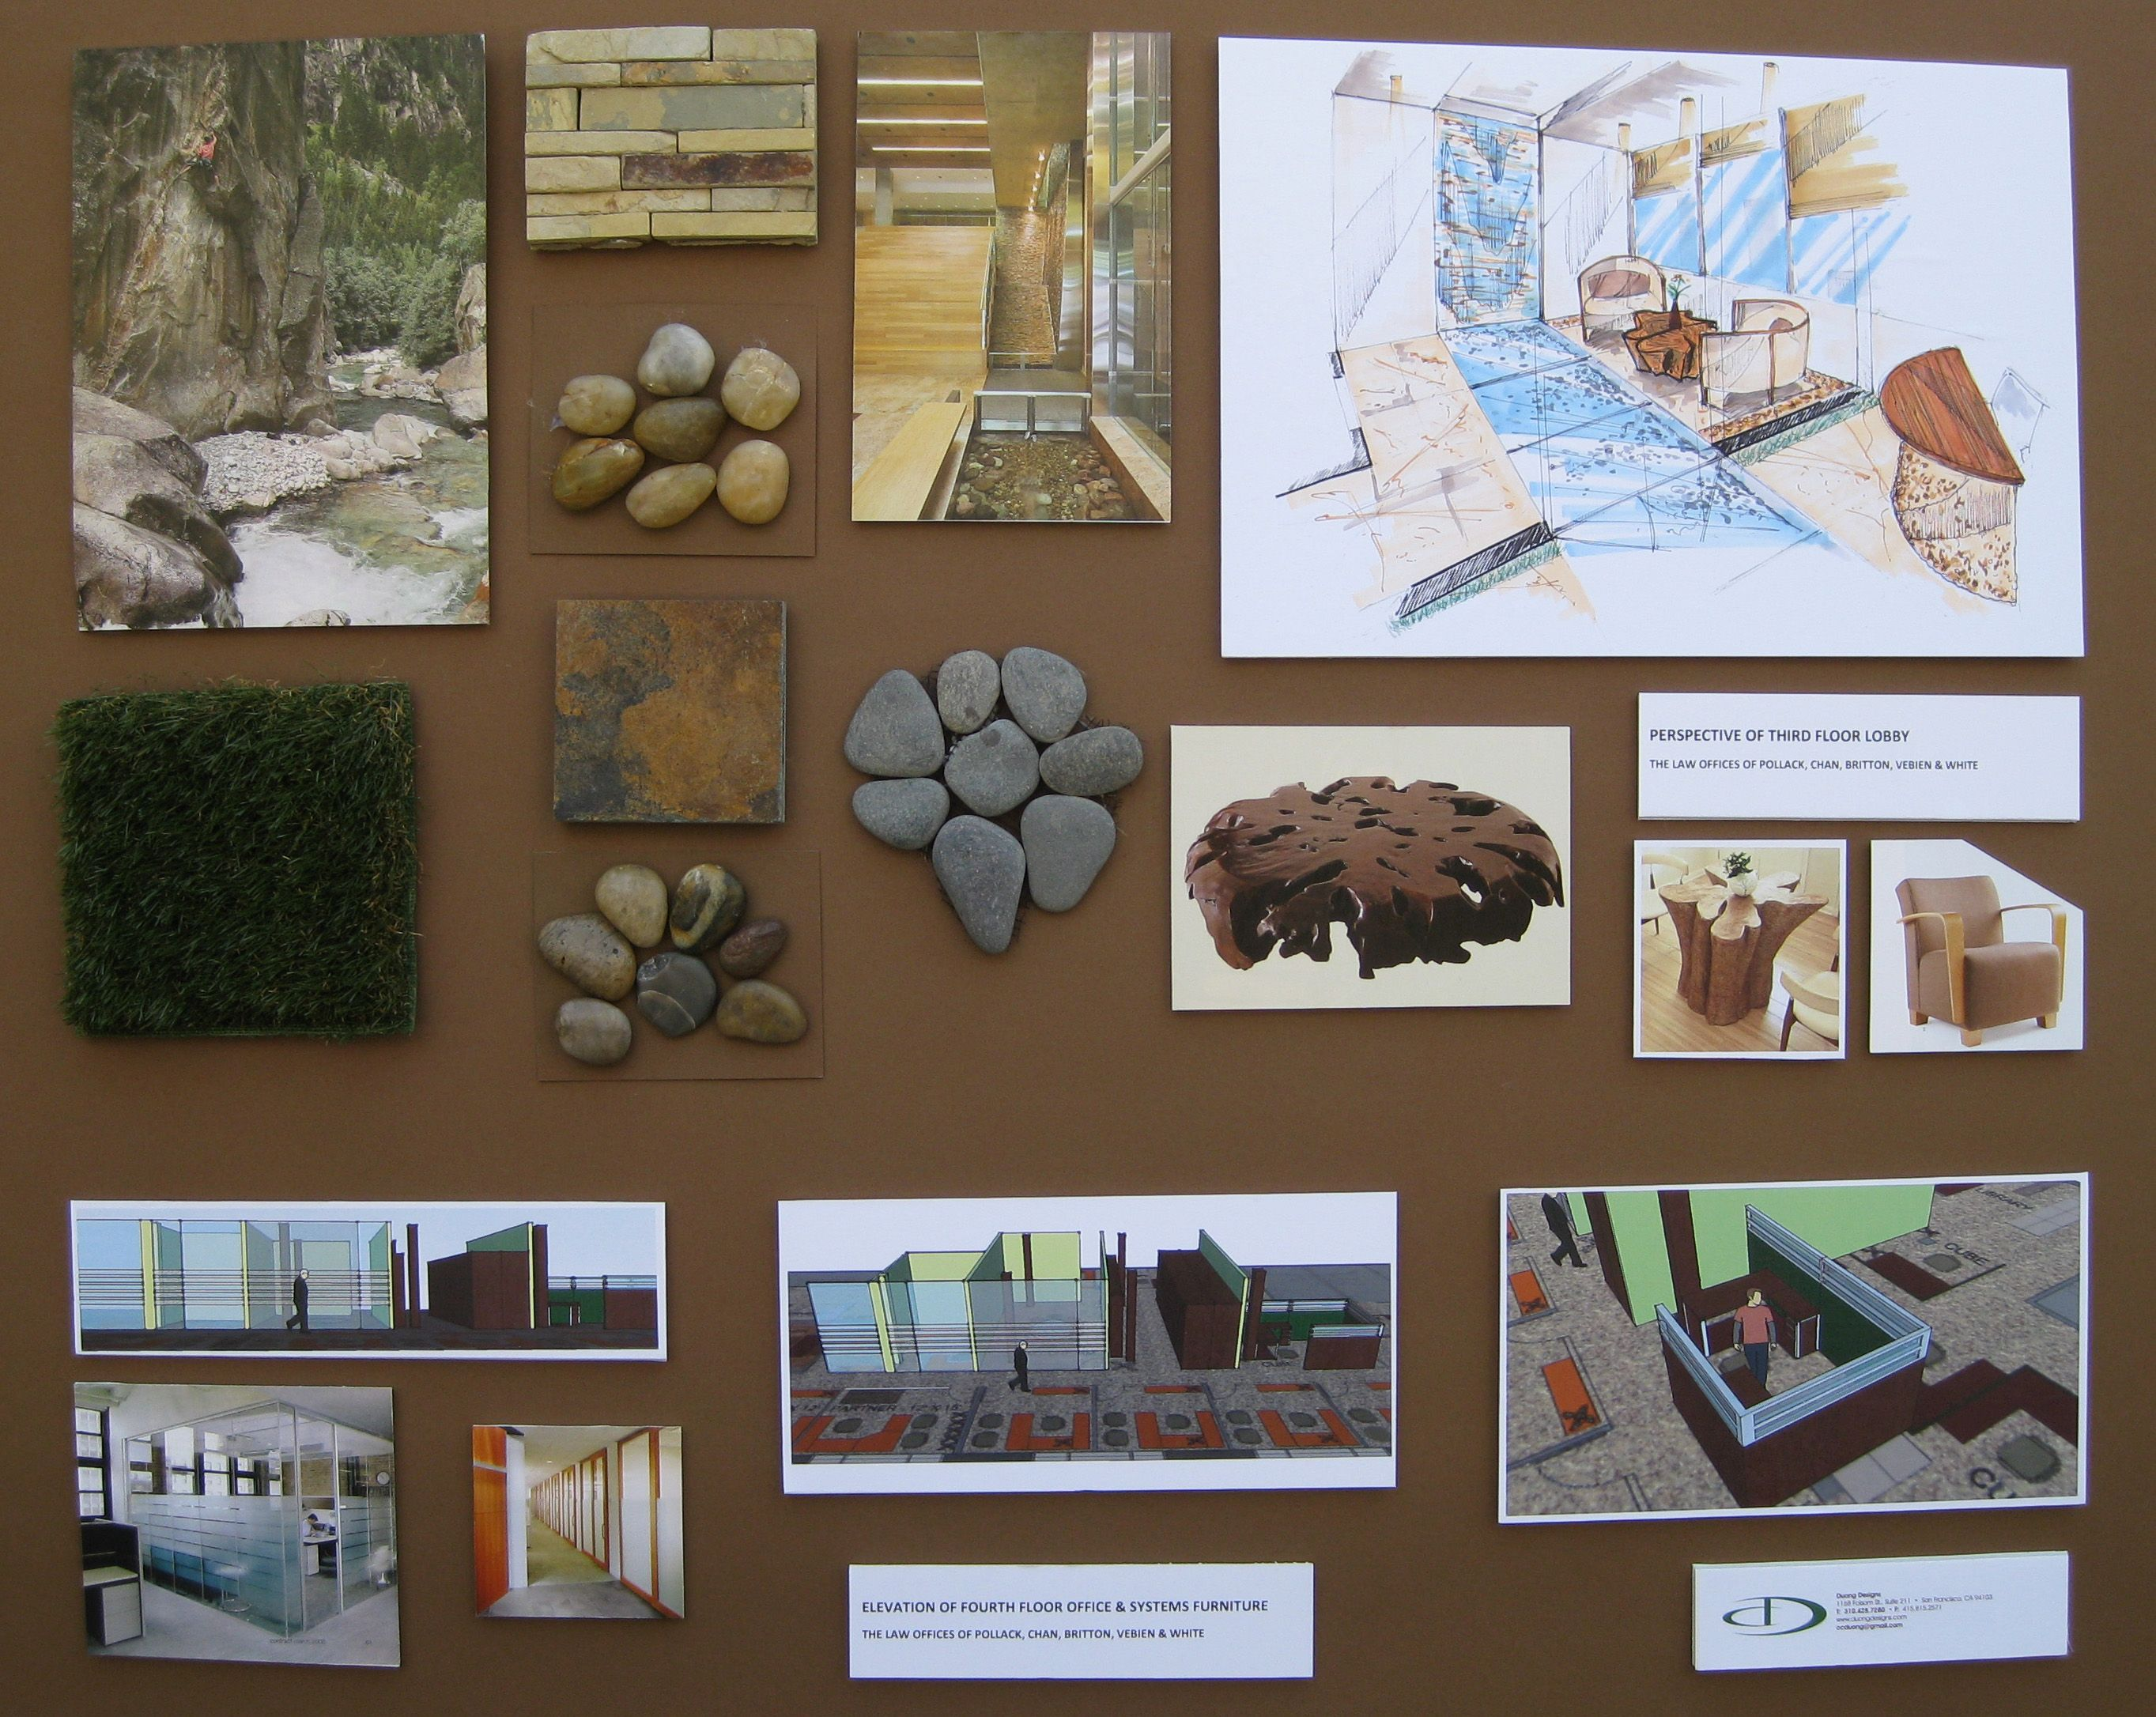 Nature inspired commercial office interior design material board